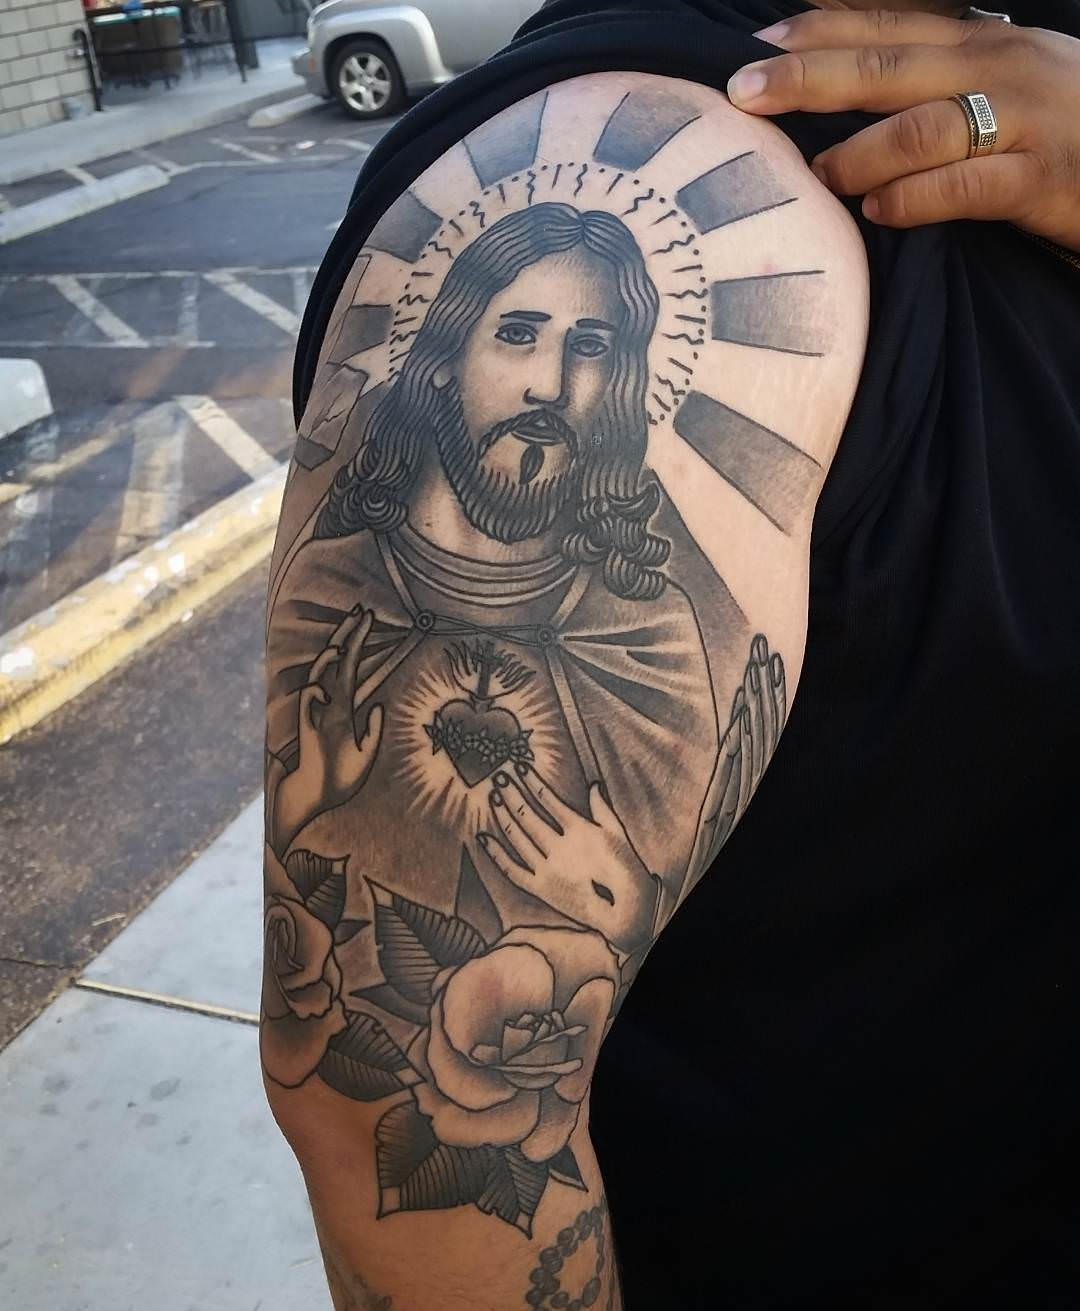 28+ Jesus Tattoo Designs Ideas | Design Trends - Premium PSD, Vector ...